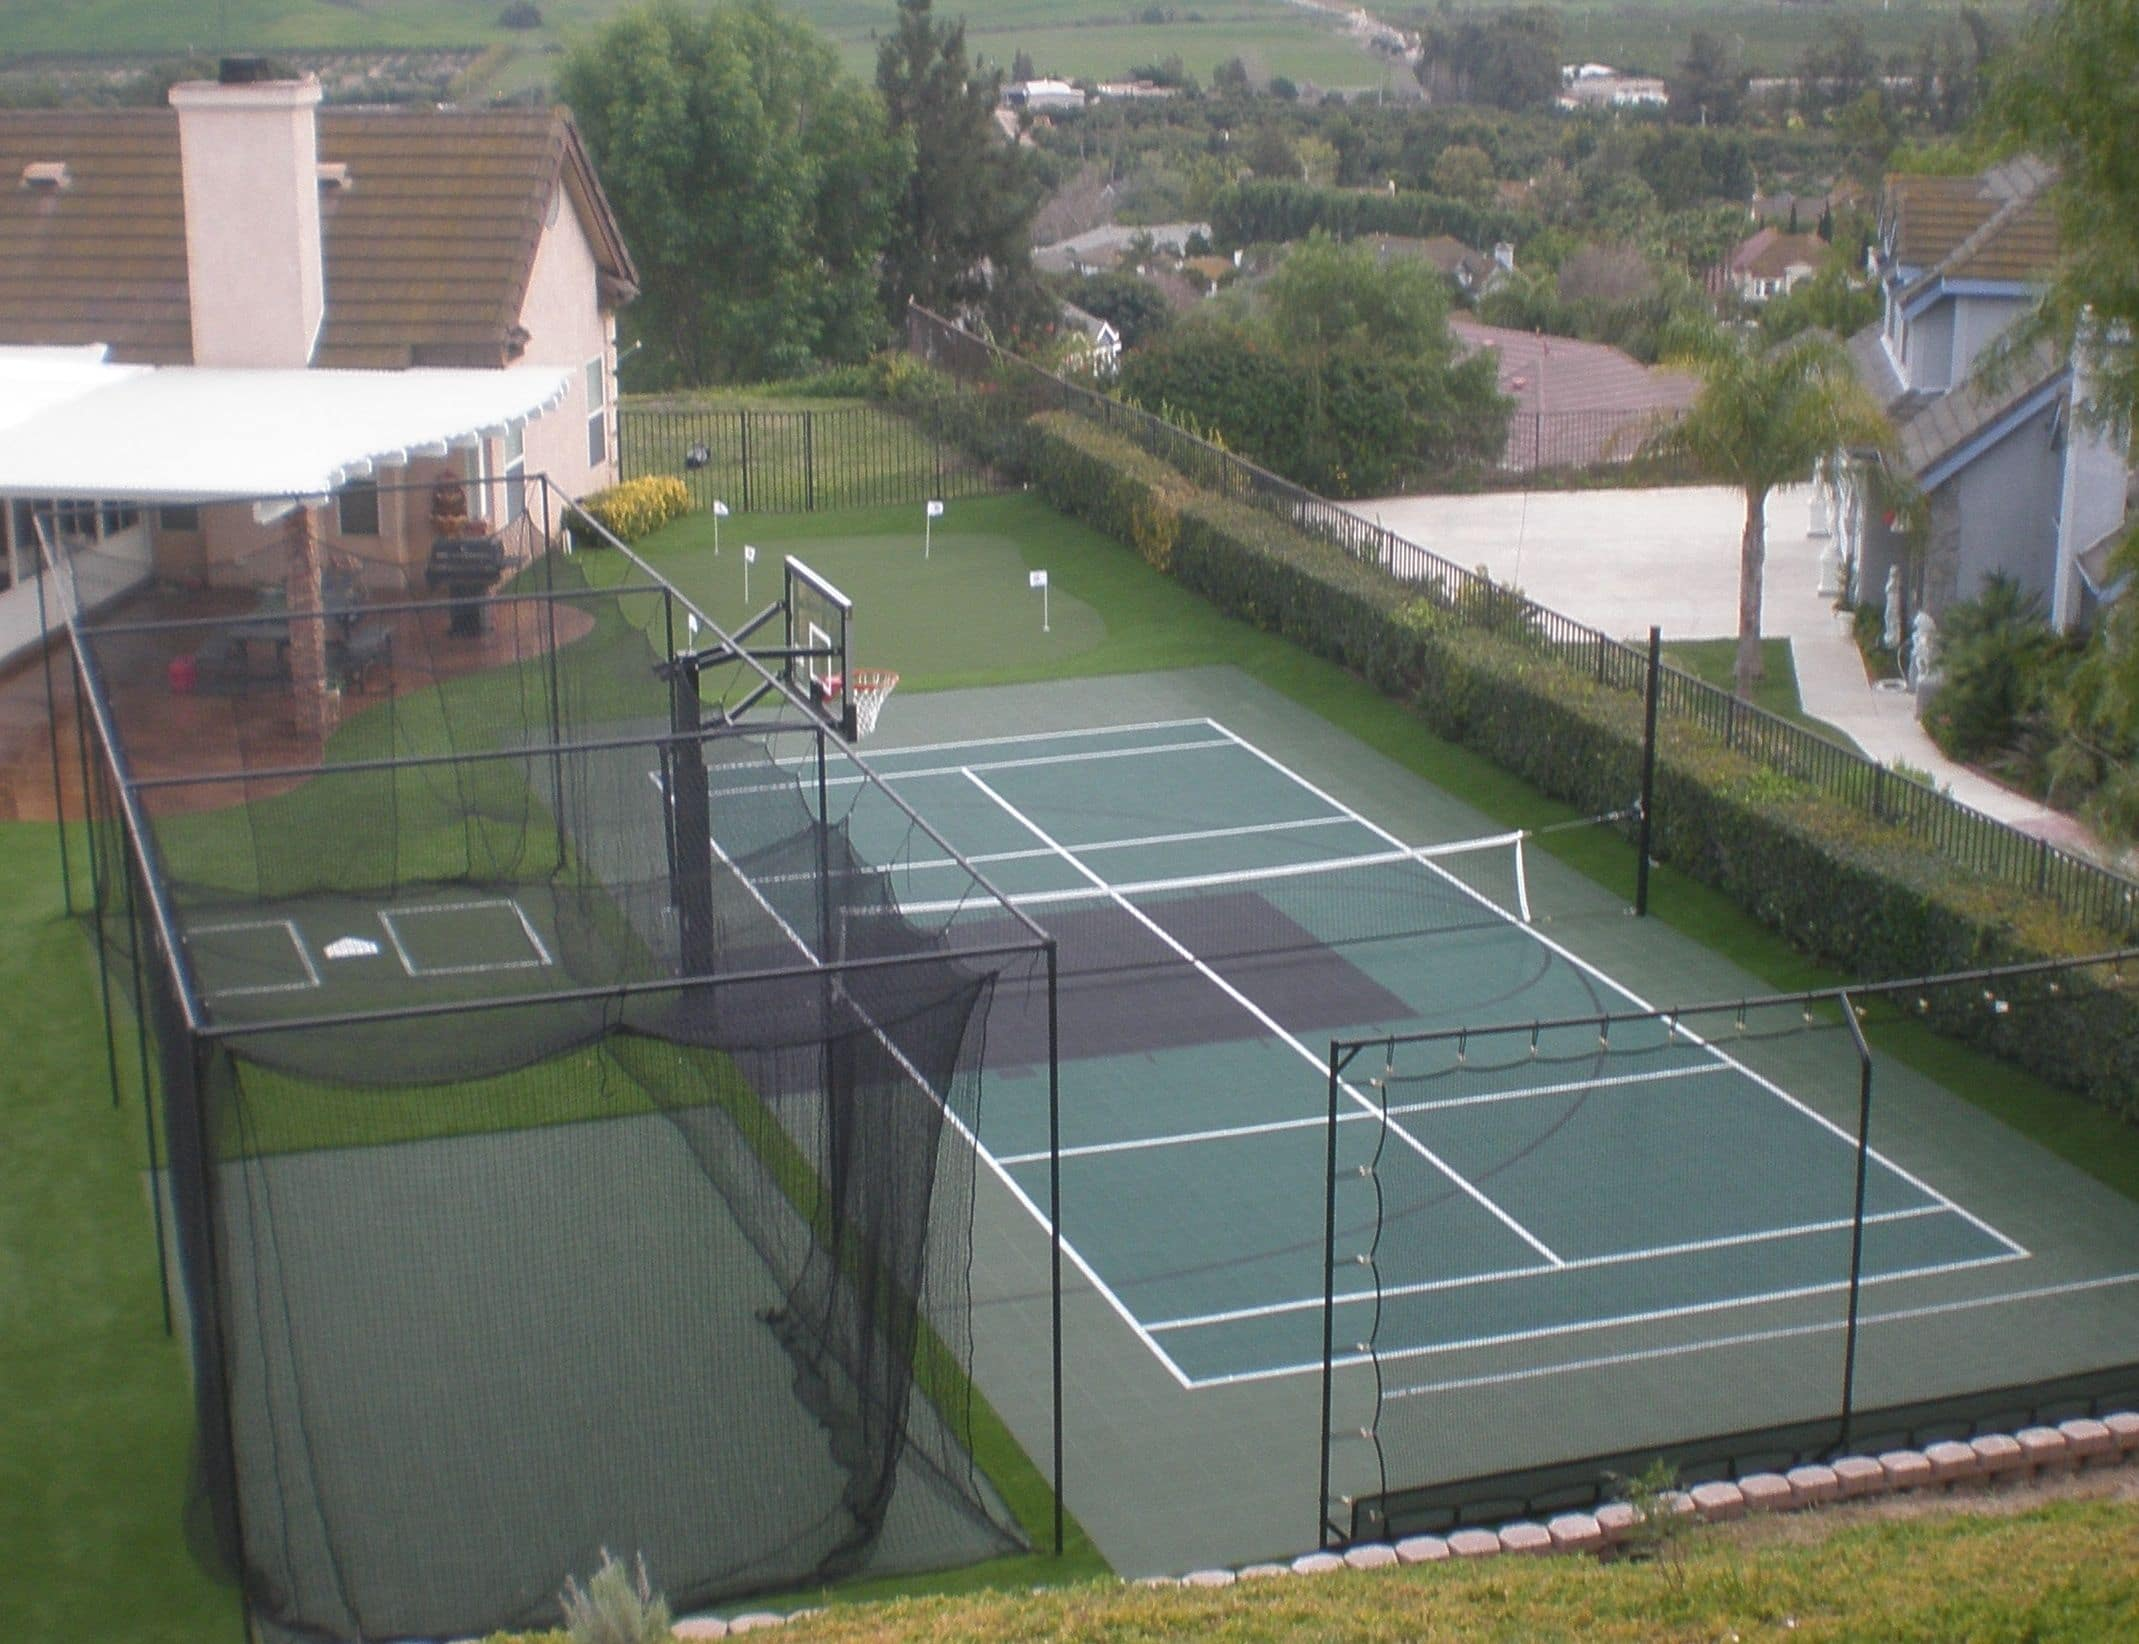 Our Backyard Courts And Surfaces Are Versatile And Come In So Many  Different Color Options. We Design All Game Courts For Optimal Performance  That Is Easier ...